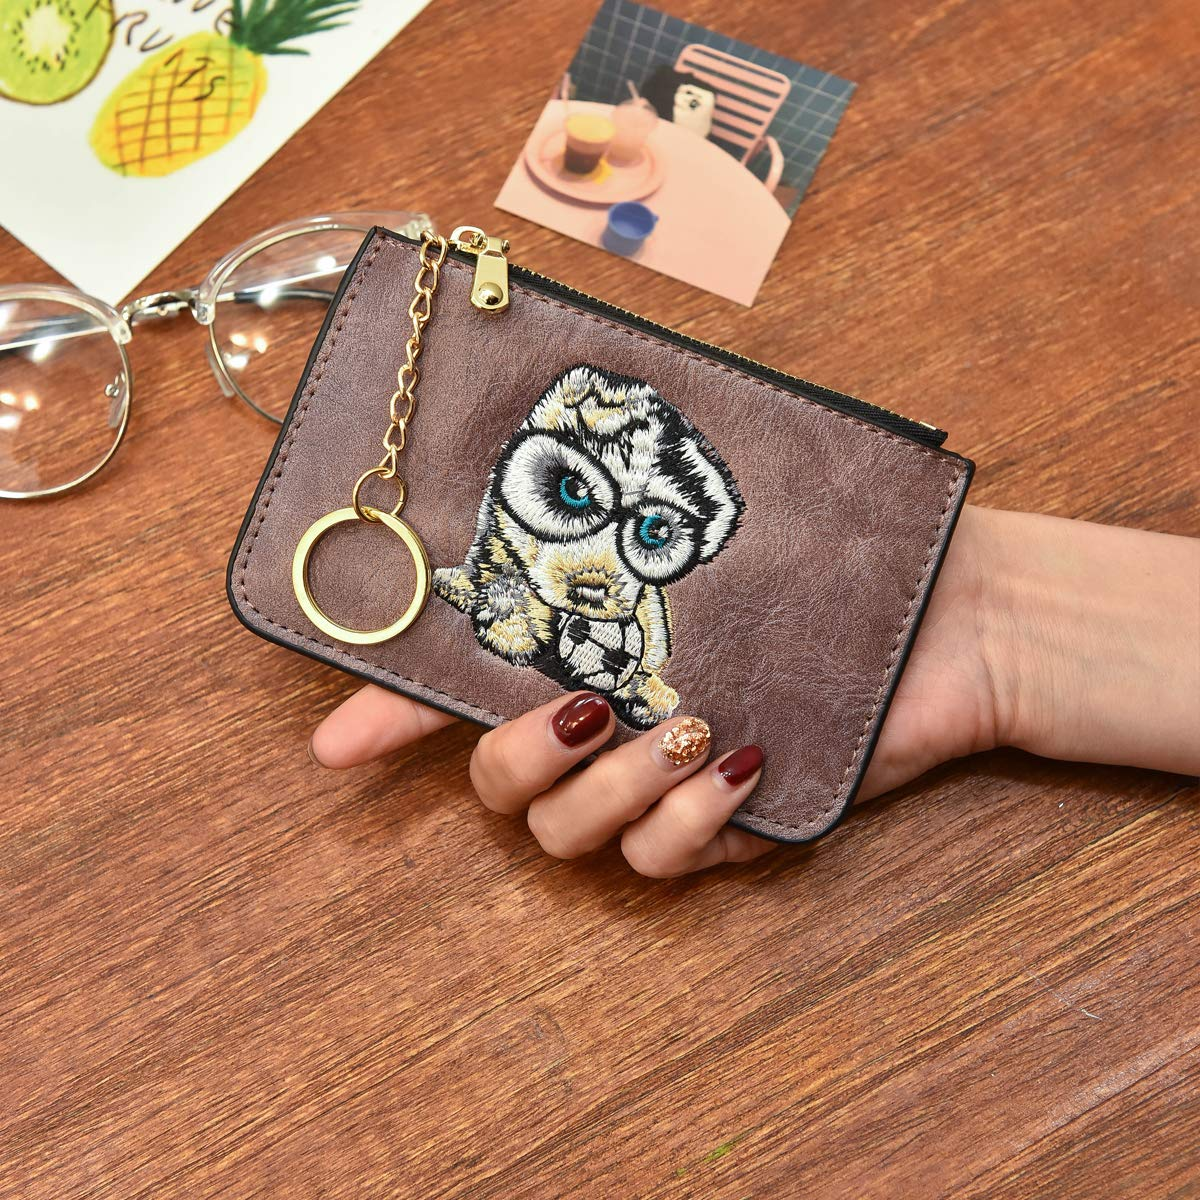 AnnabelZ Women's Coin Purse Change Wallet Embroidery Pouch Leather Card Holder with Key Chain Zip (Z-Purple Embroidery) by AnnabelZ (Image #2)